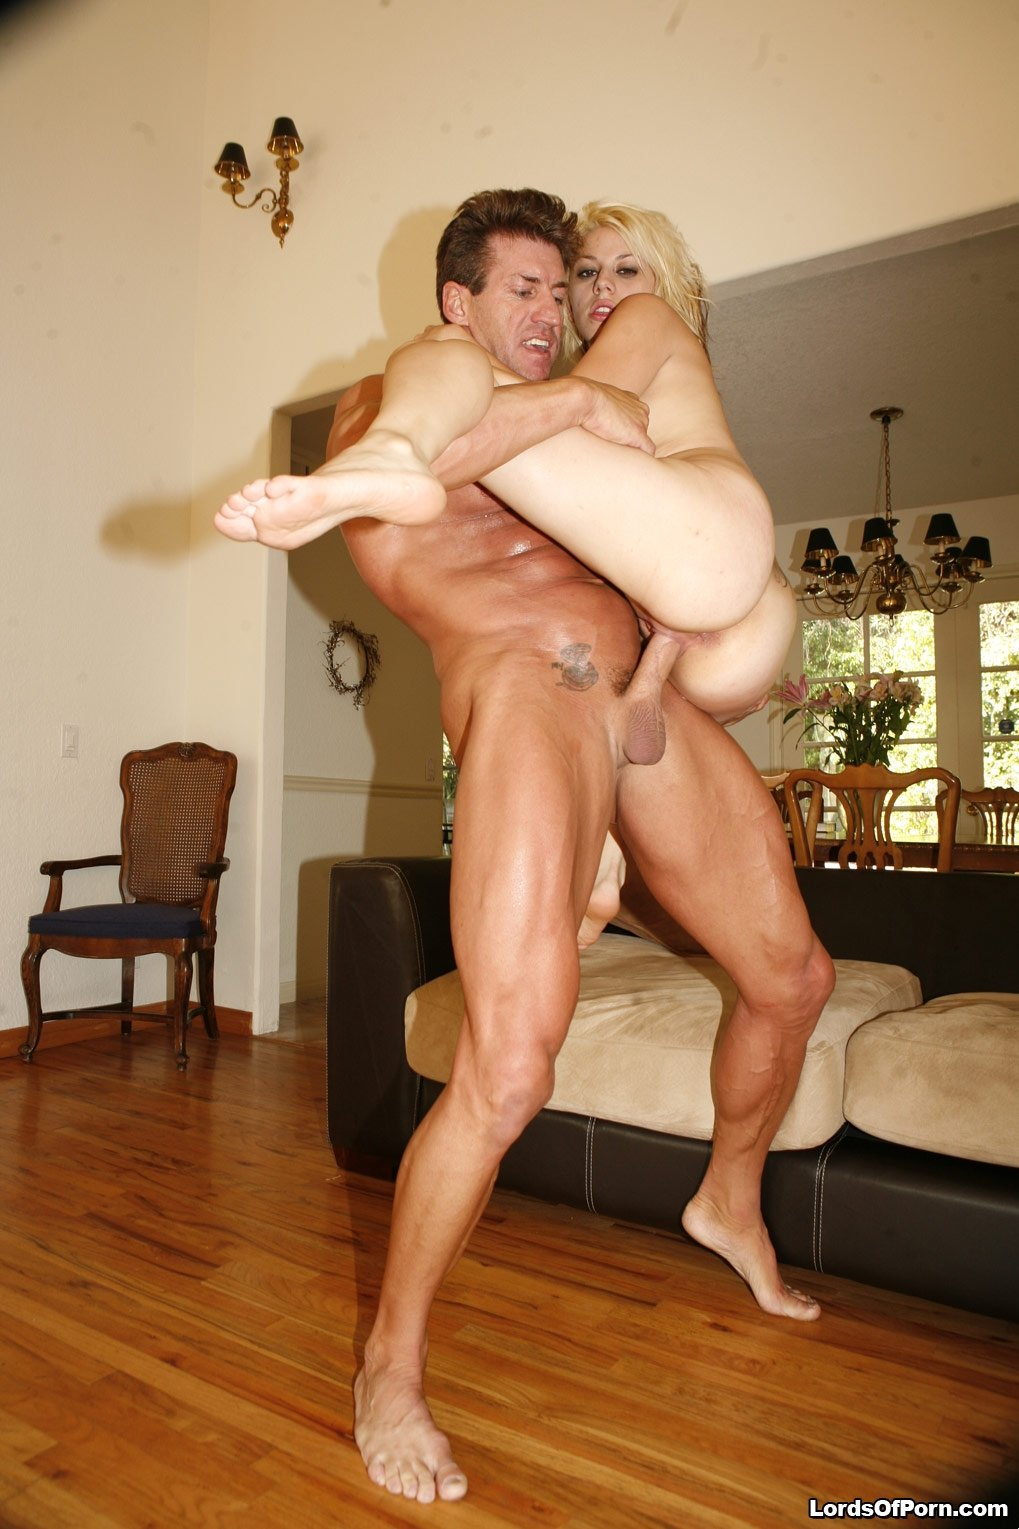 Pole - Jordy Love - FULL SCENE on http://BestClipXXX.com authoritative answer